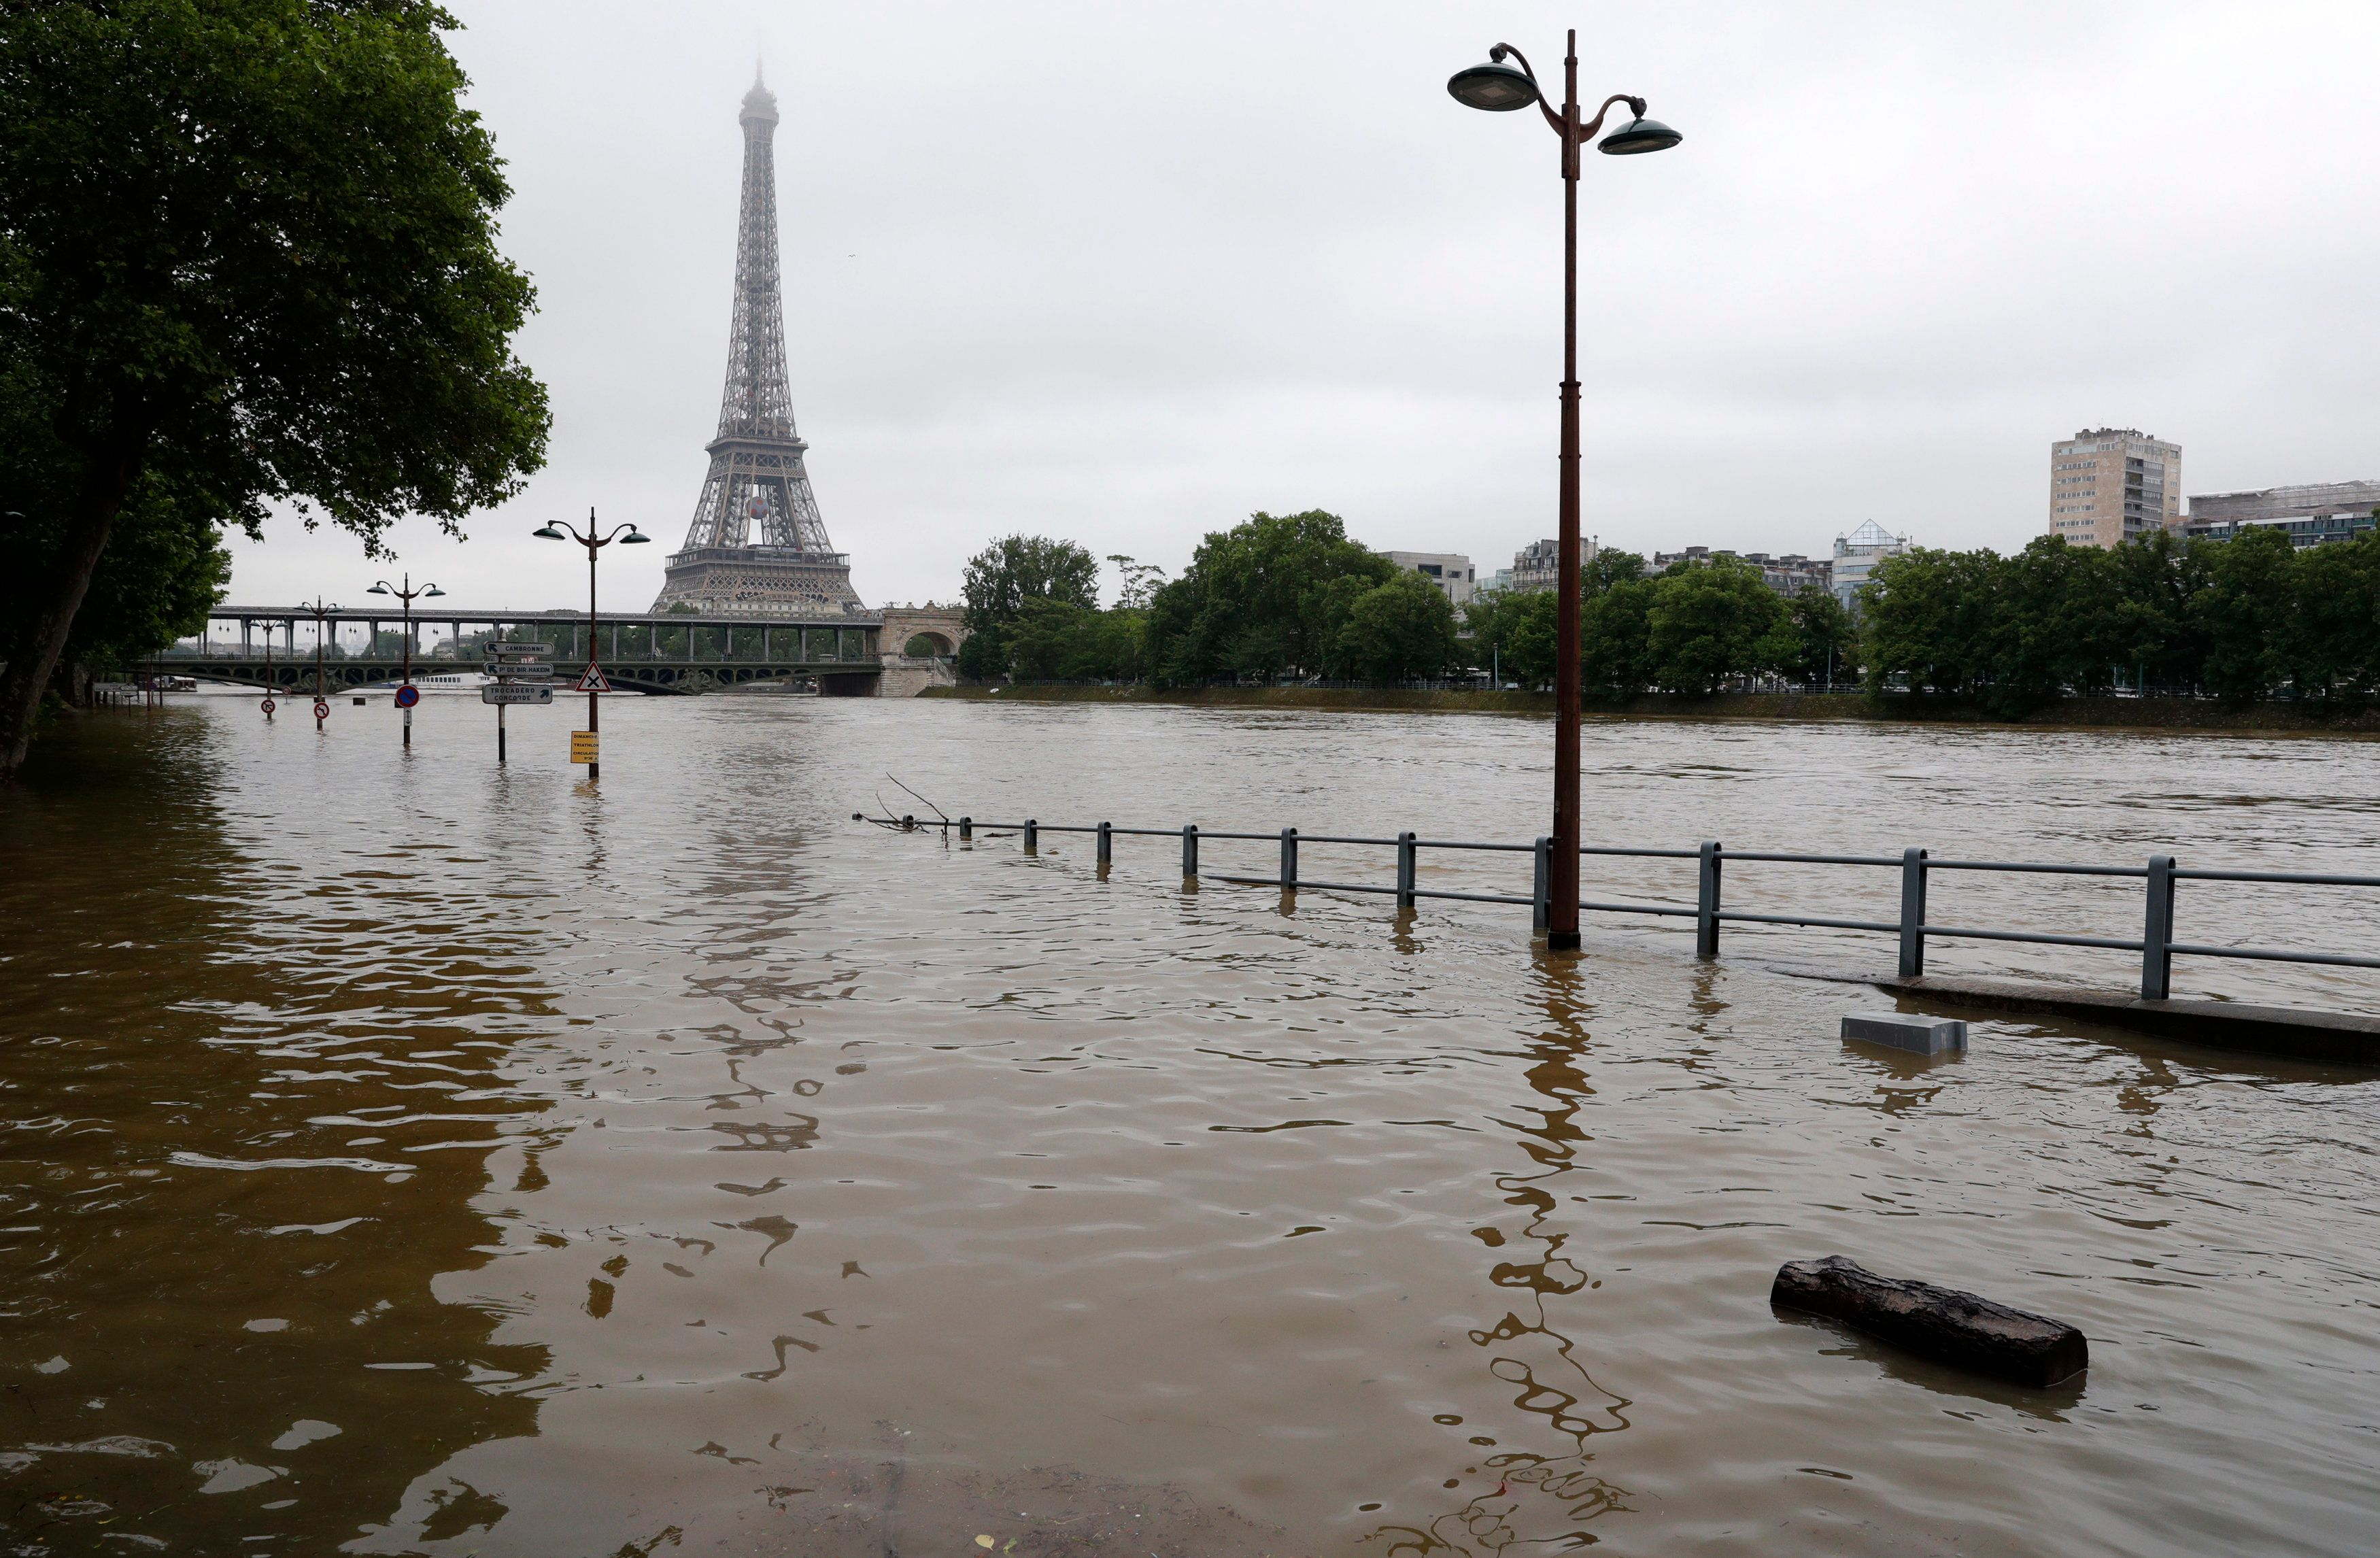 View of the flooded Seine near the Eiffel Tower in Paris onJune 3, 2016, after days of almost nonstop rain.